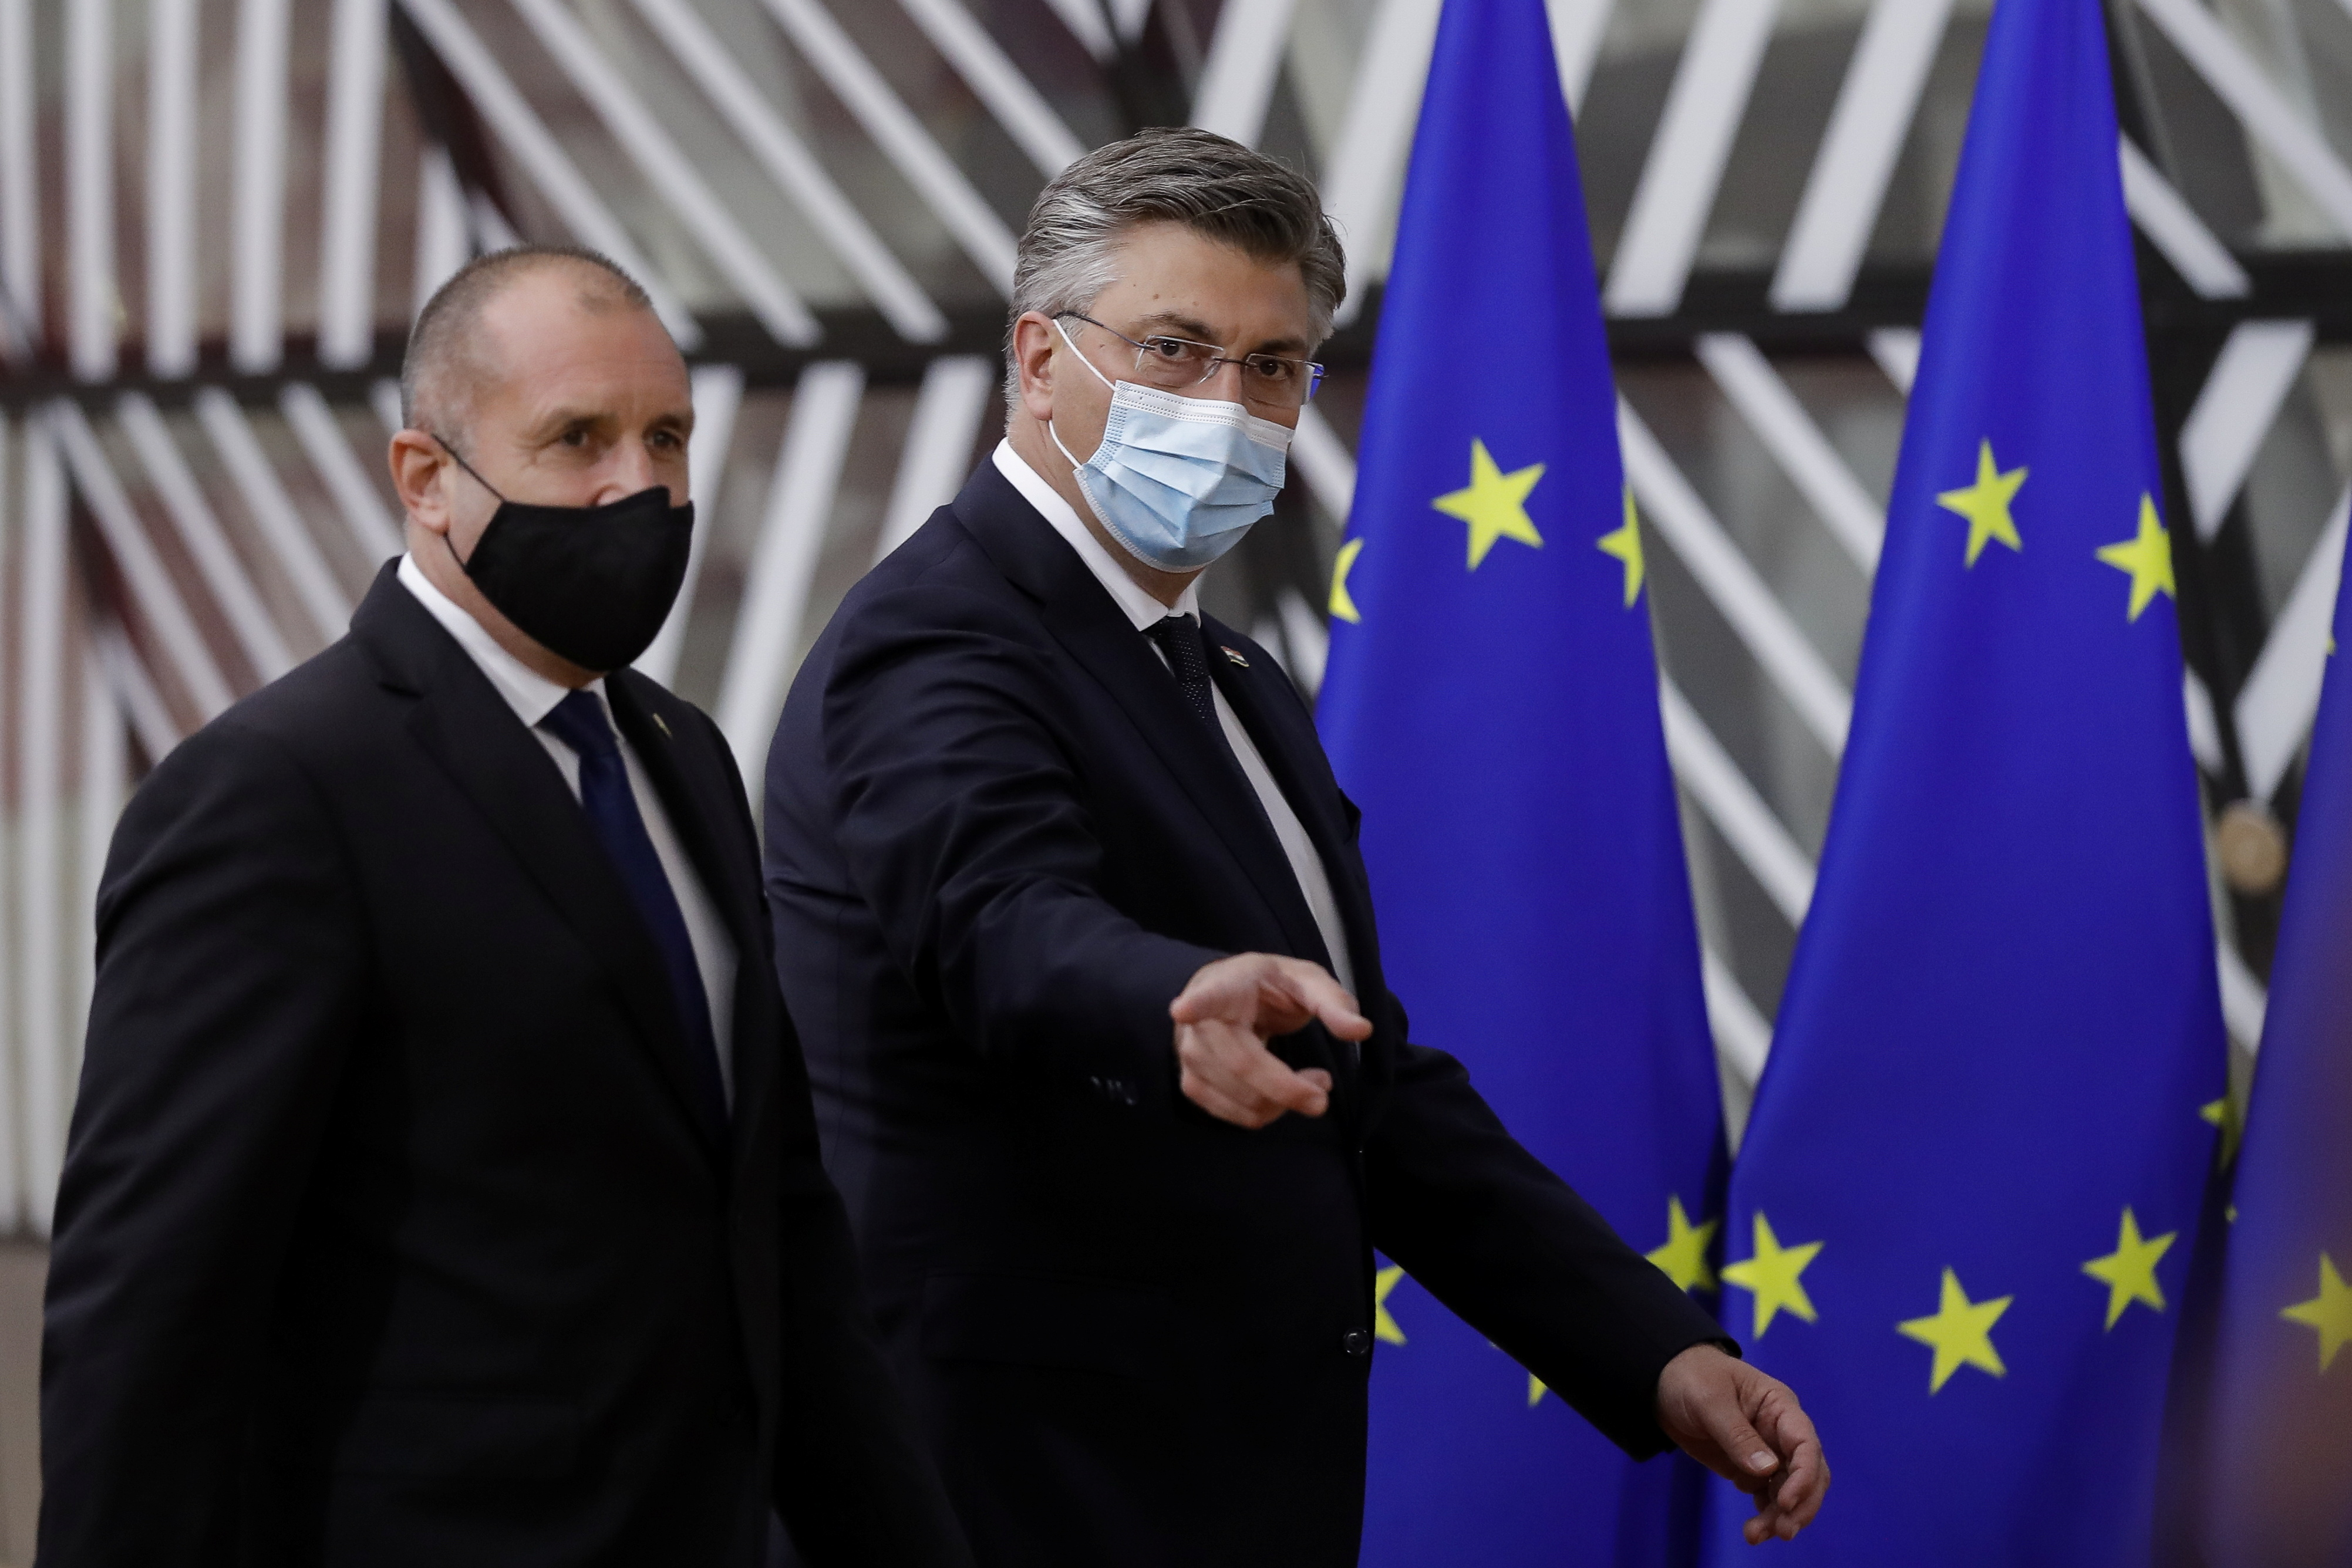 Bulgaria's President Rumen Radev and Croatia's Prime Minister Andrej Plenkovic arrive for a face-to-face EU summit in Brussels, May 24, 2021. Olivier Hoslet/Pool via REUTERS